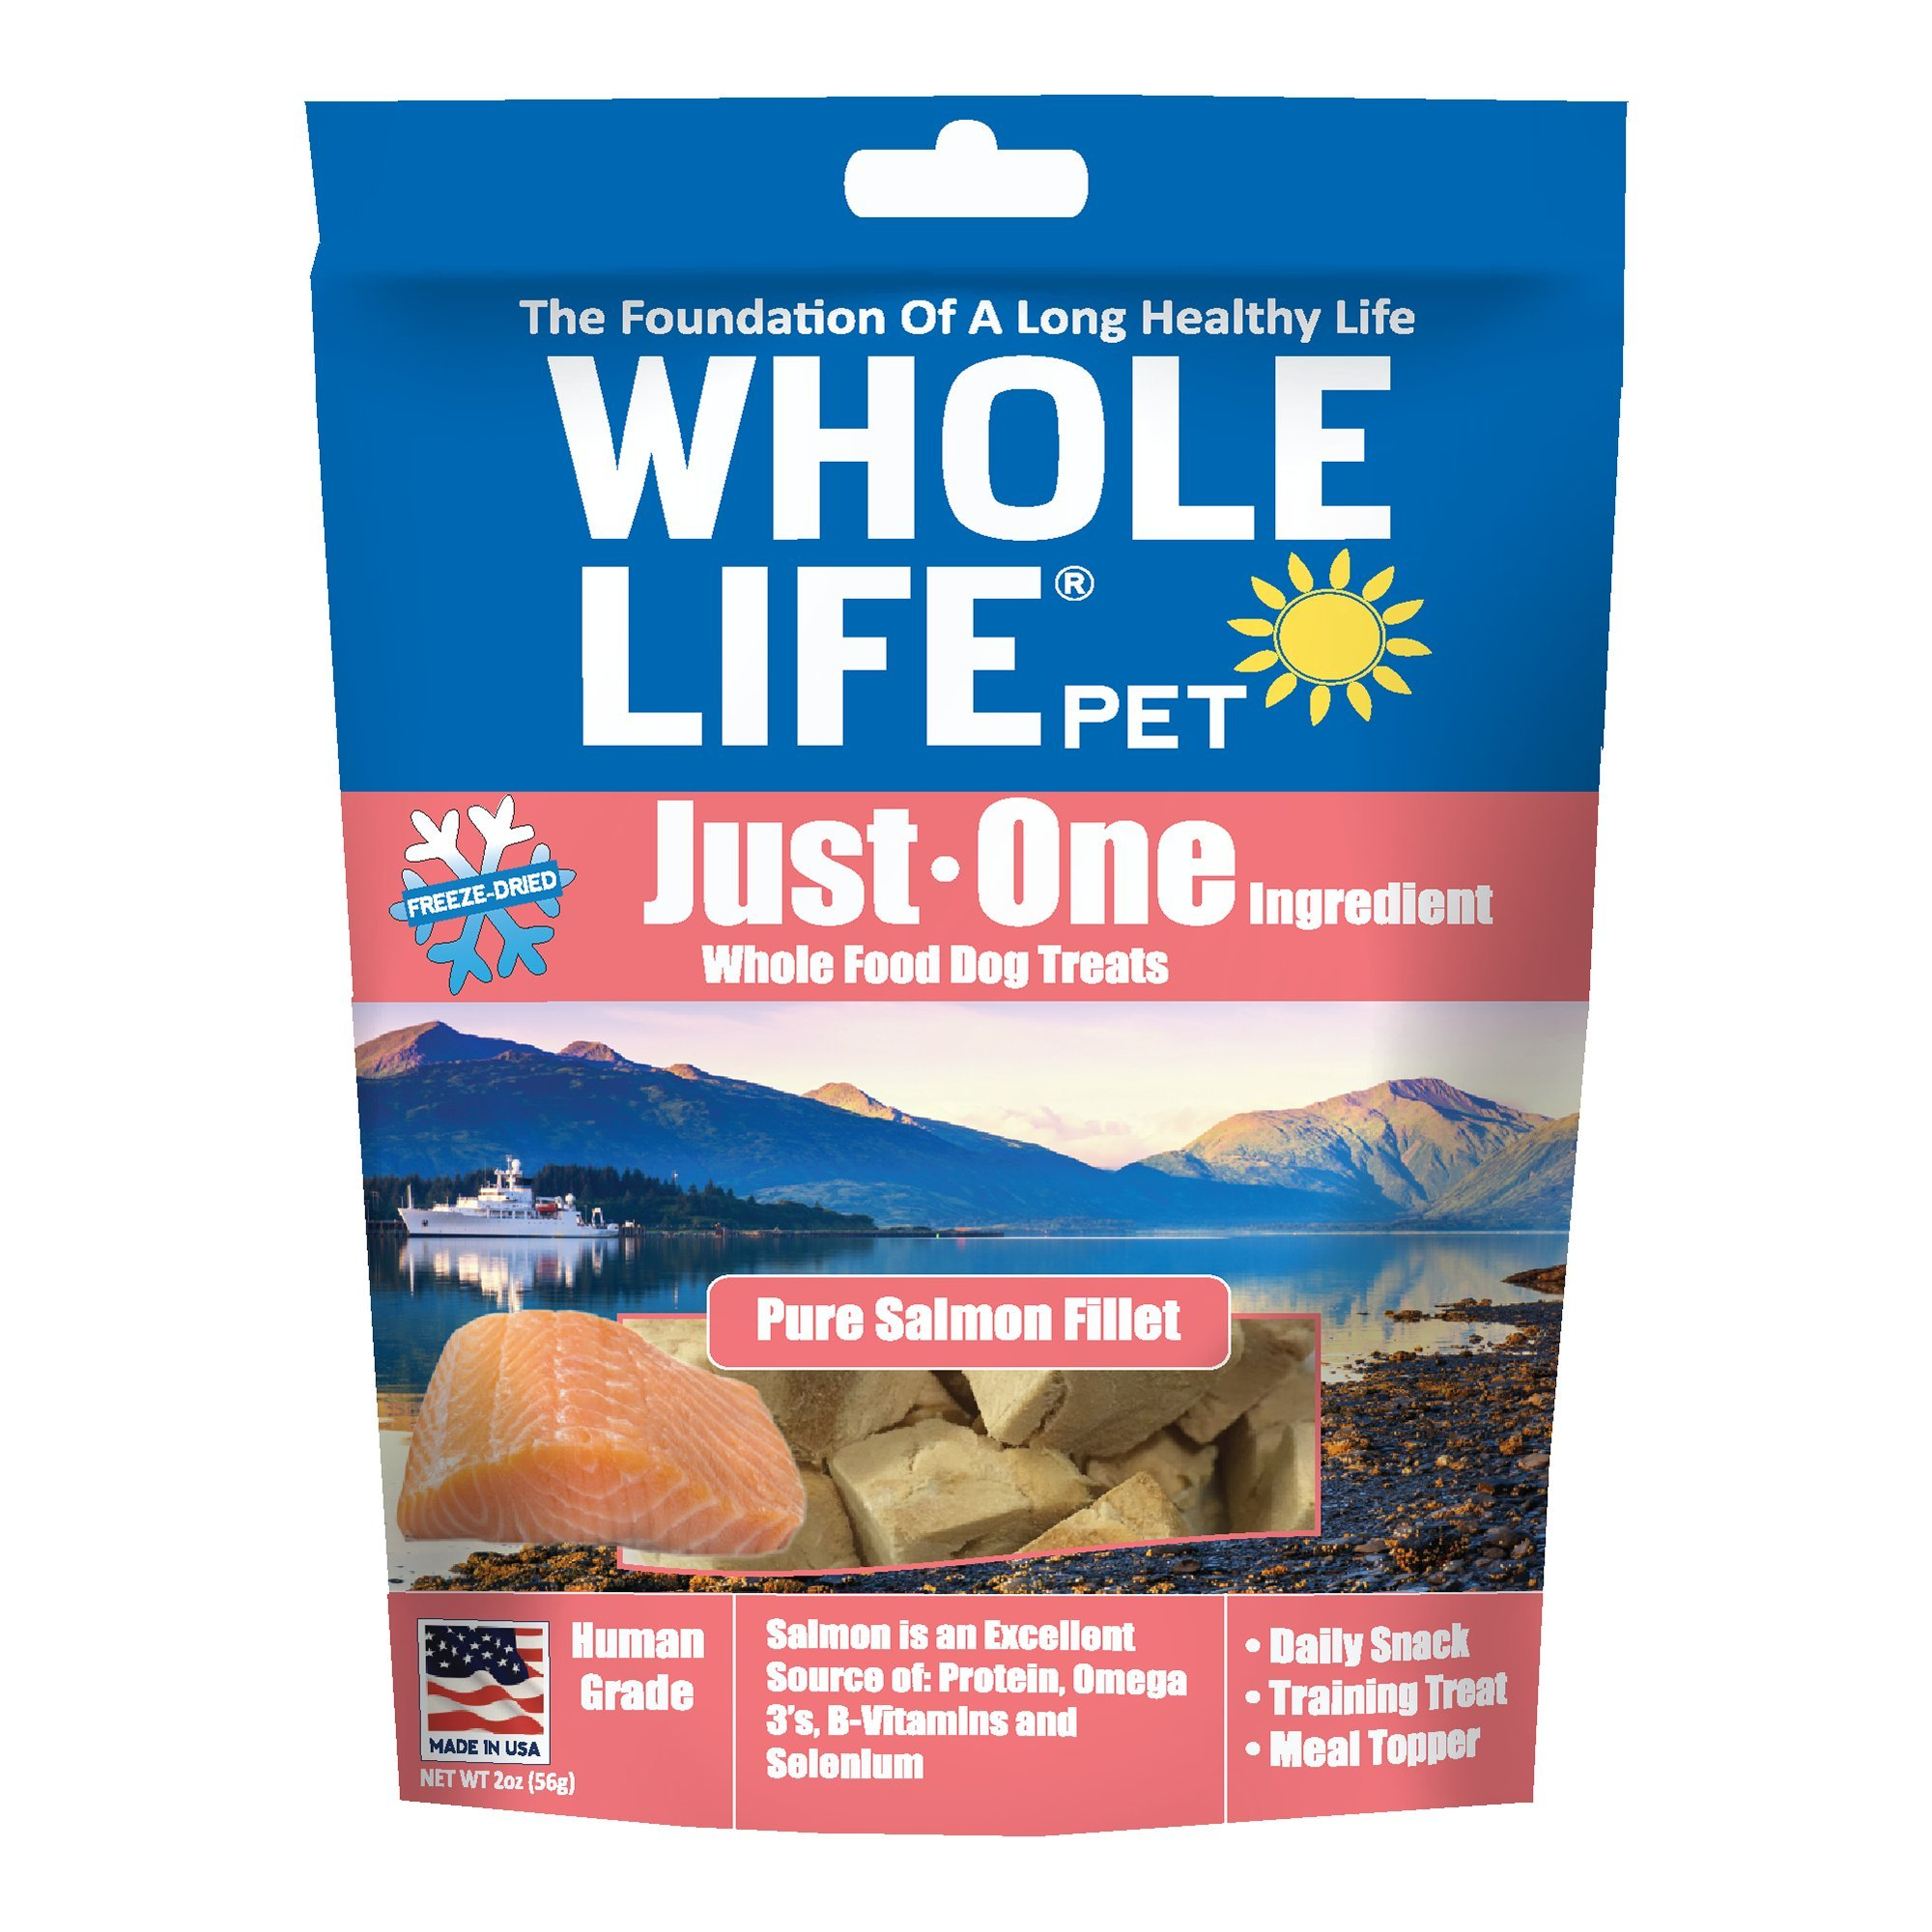 Whole Life Pet Just One-Single Ingredient Freeze Dried Treats for Dogs Pure Salmon Fillet, 2oz (Packaging May Vary)